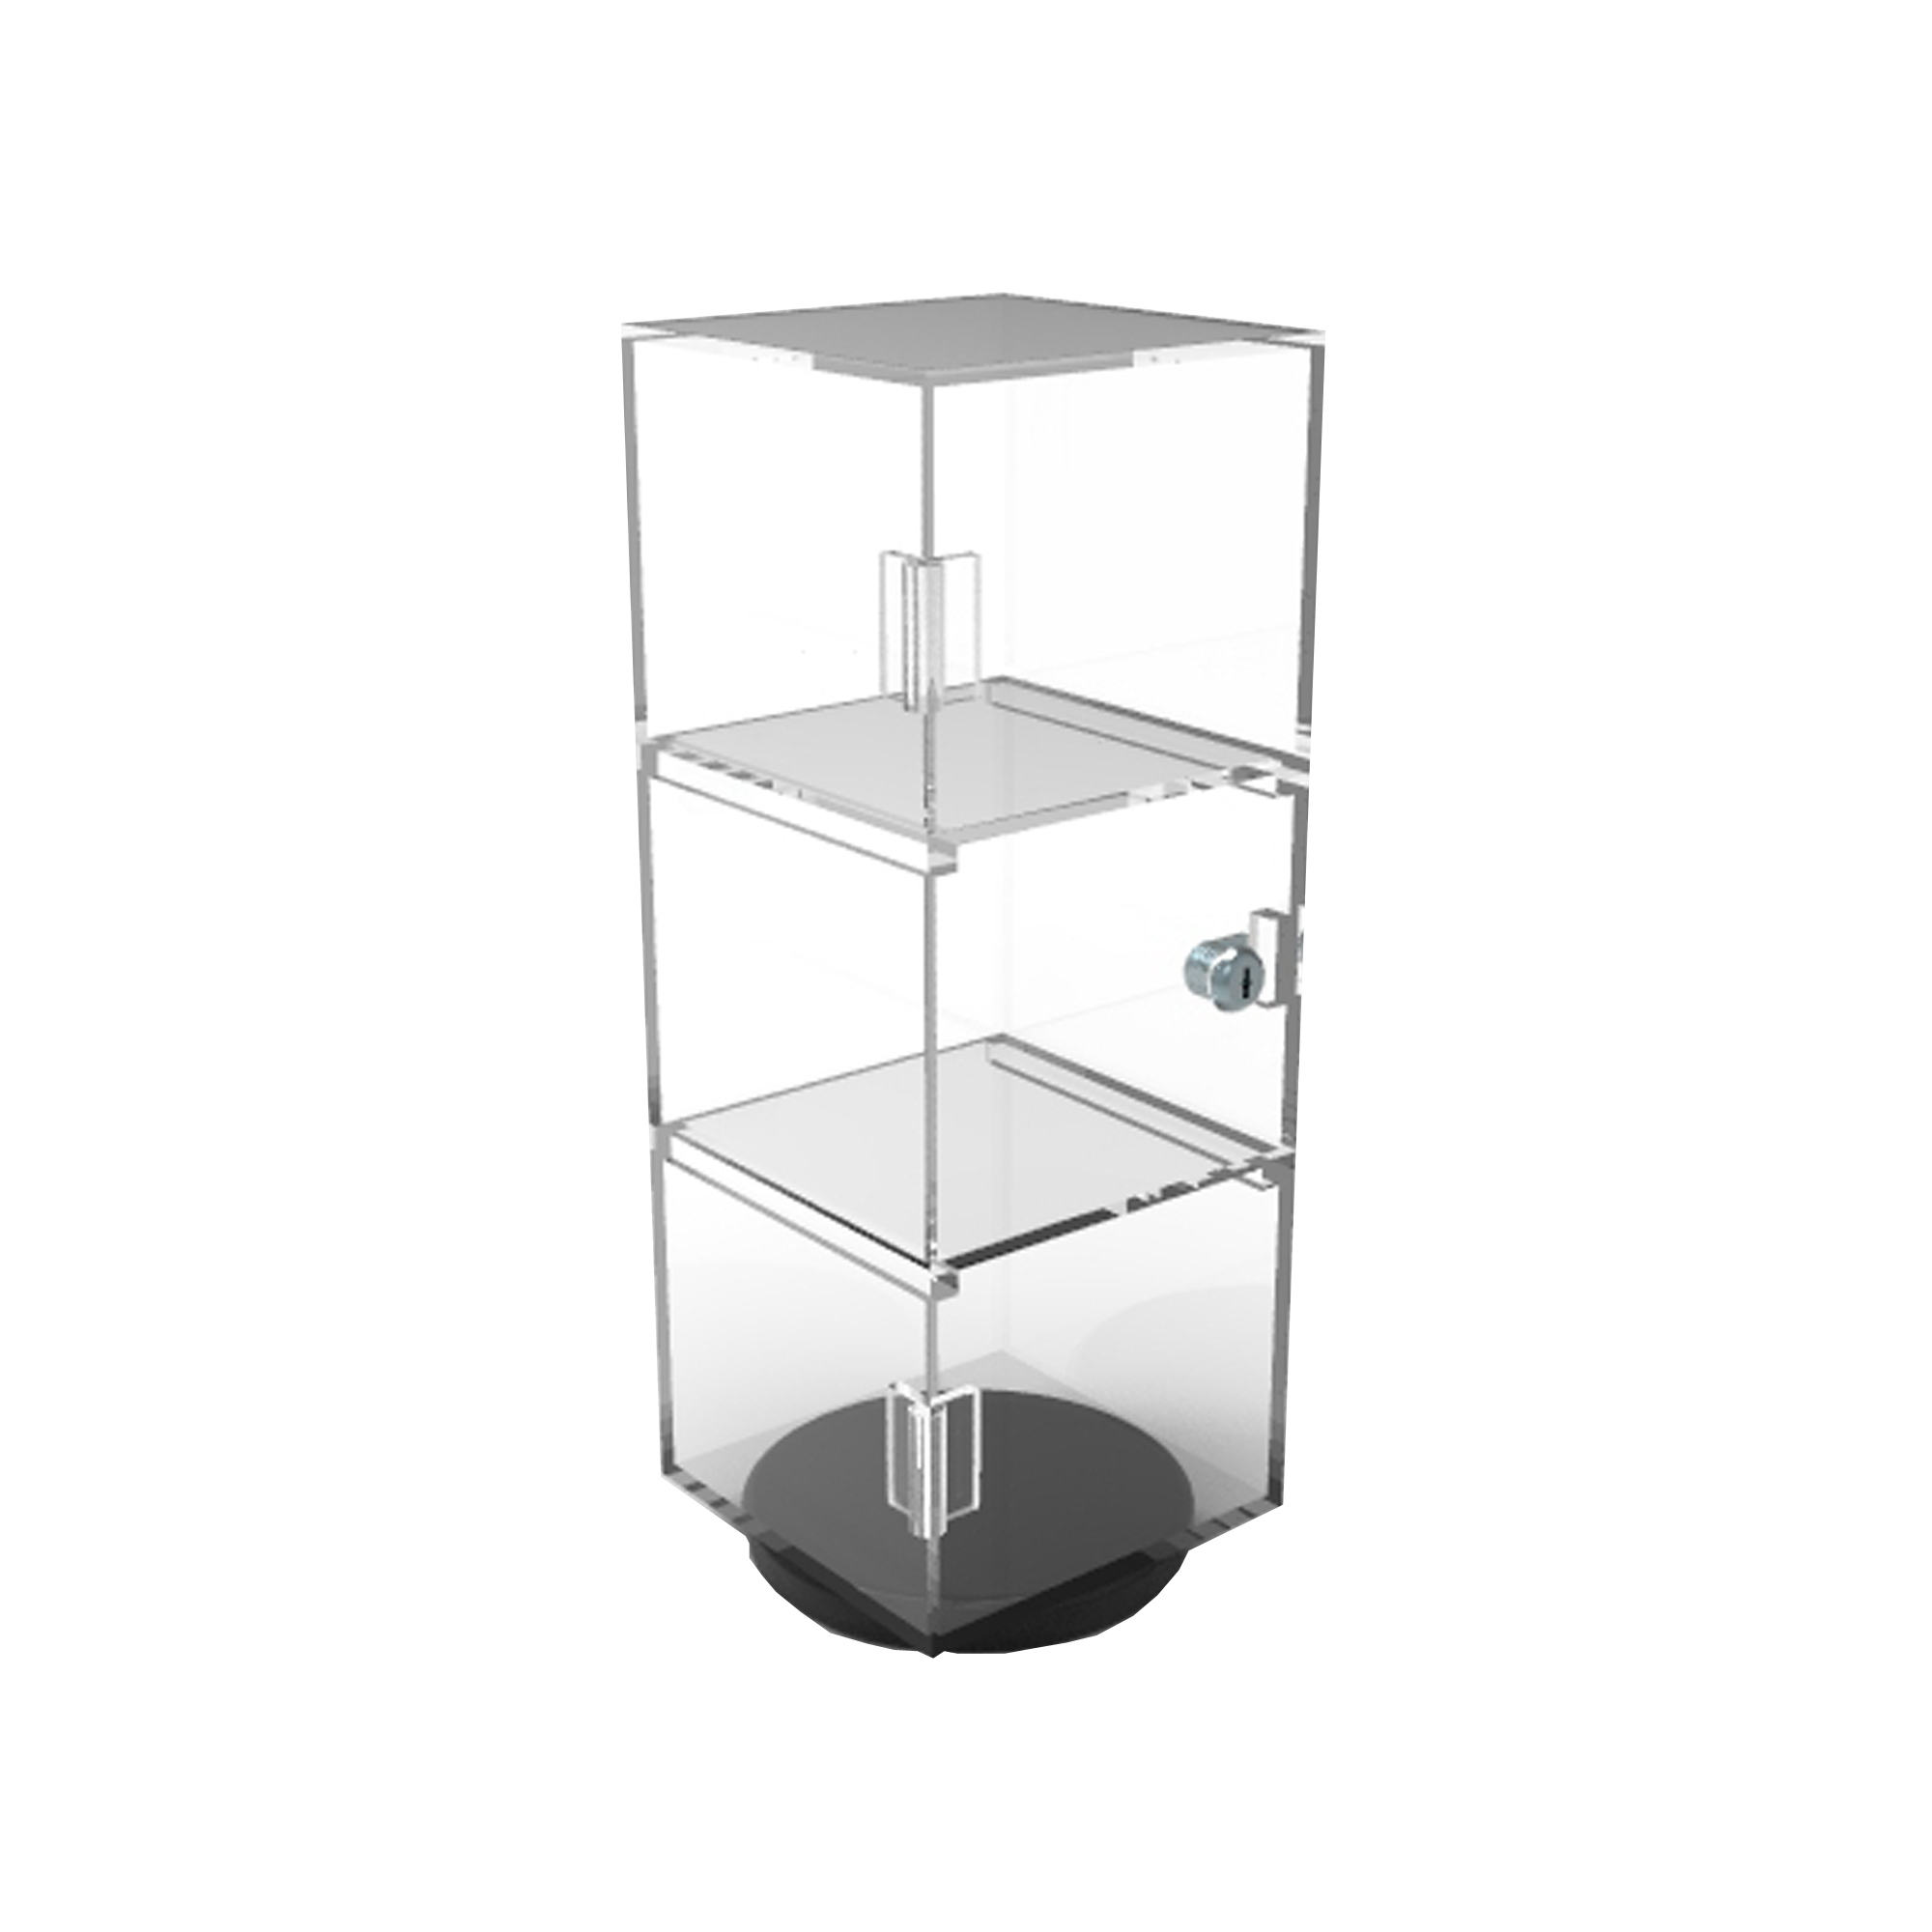 clear display cabinet acrylic showcase plexiglass shelf display rh ebay com  plexiglass/acrylic display cases with shelves